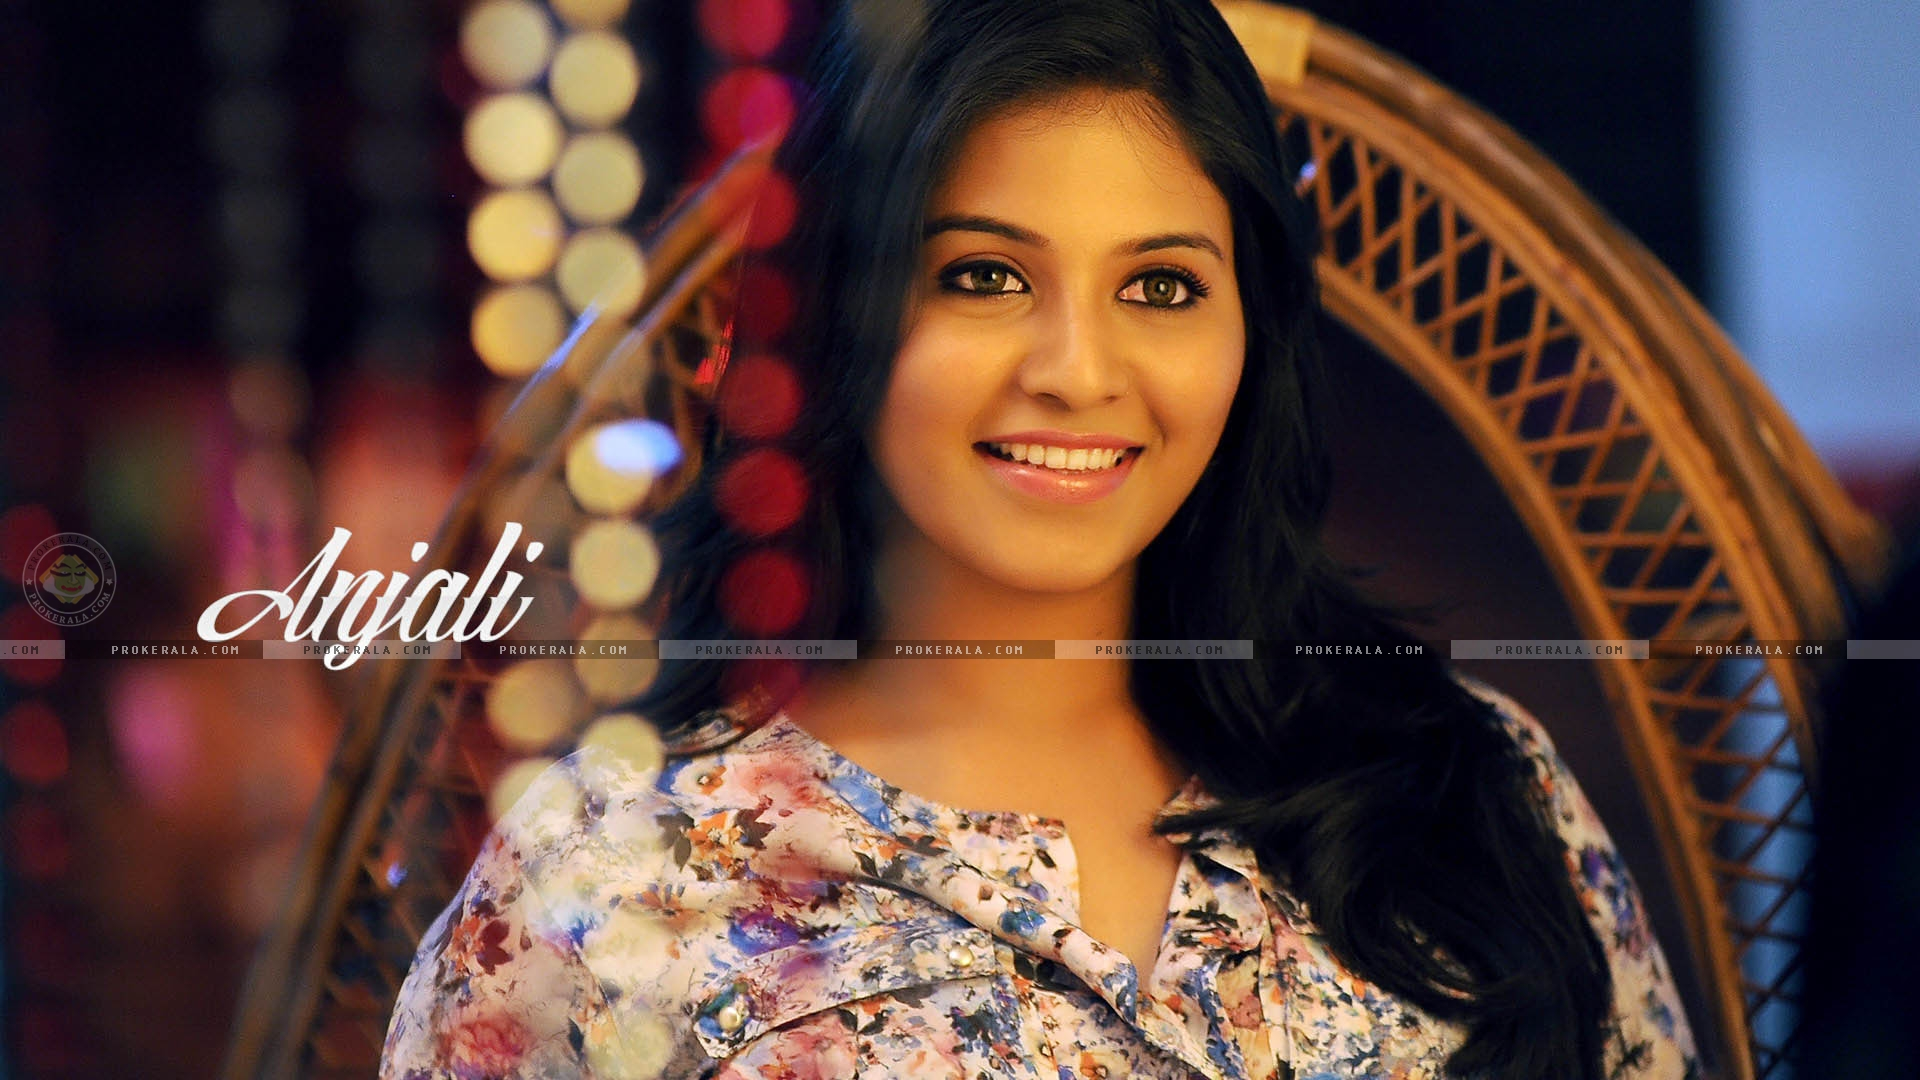 Download HD wallpaper of Anjali